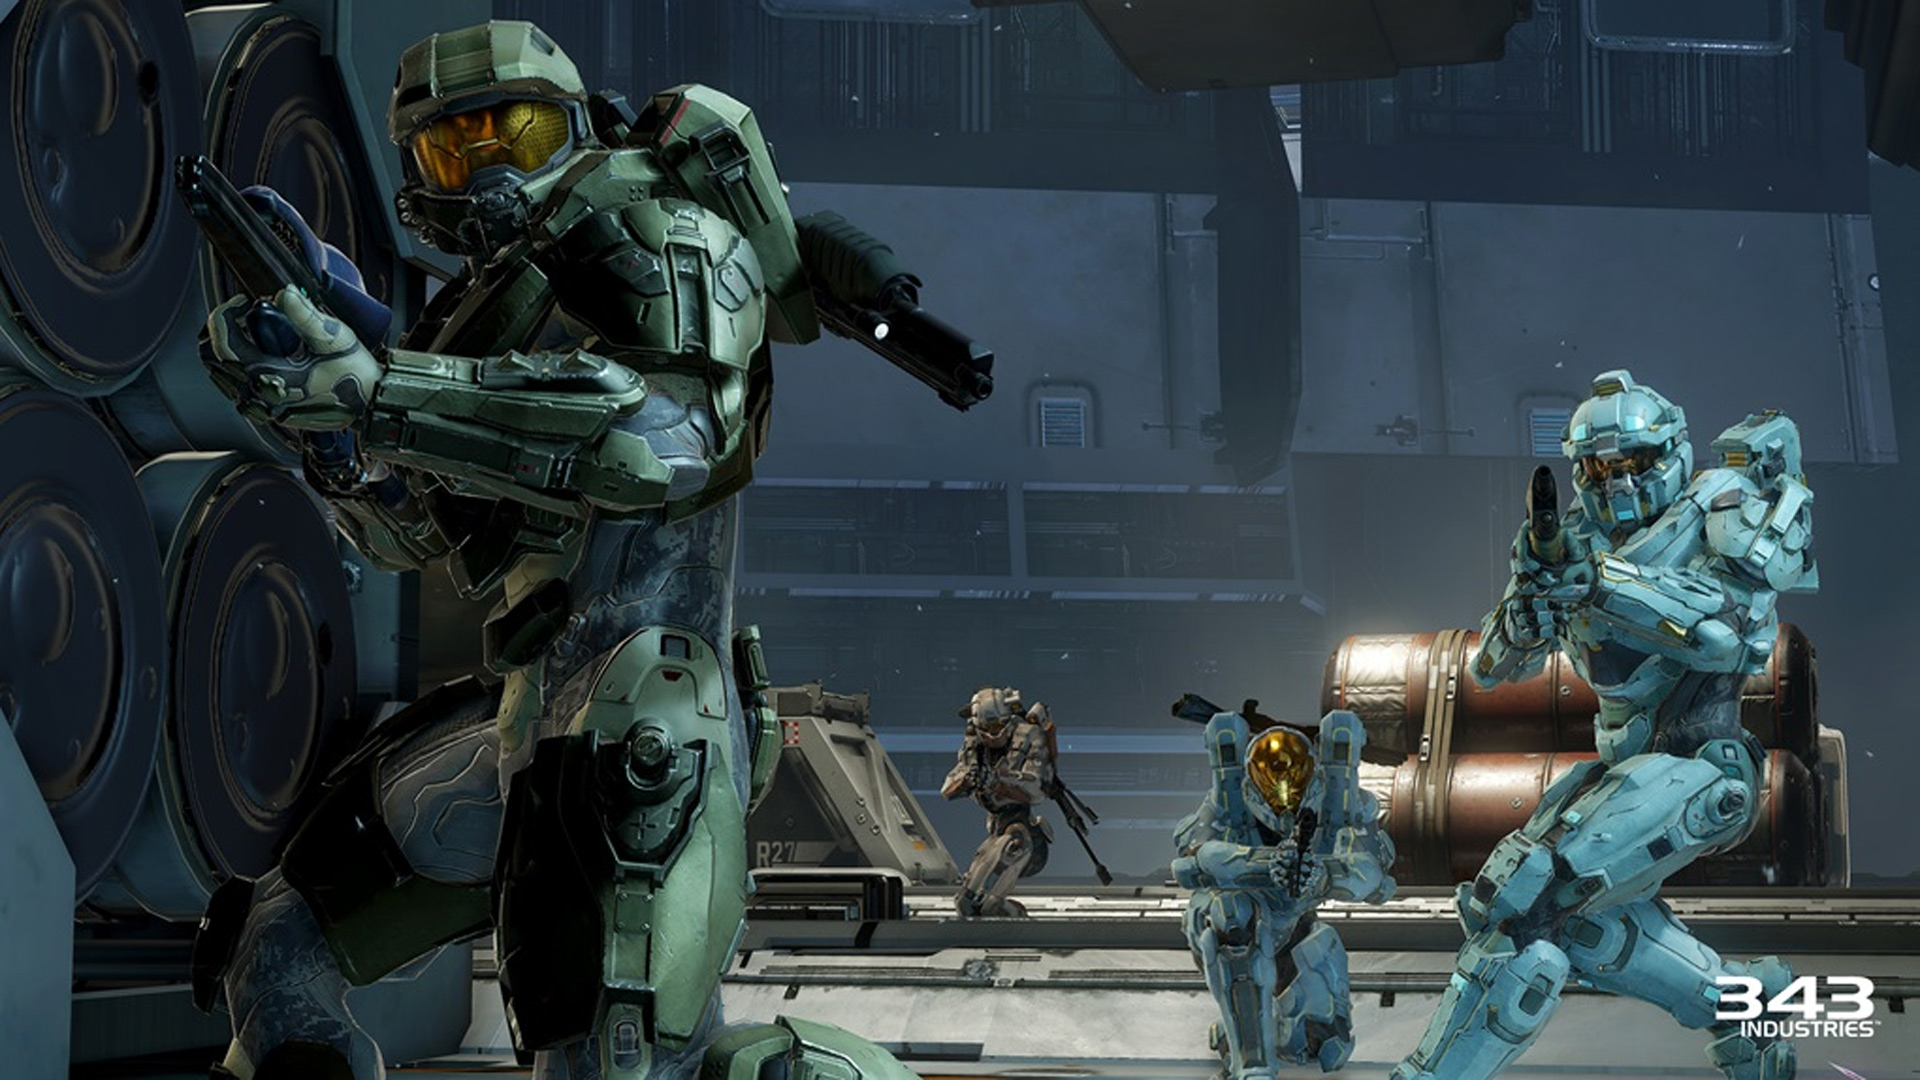 Halo 5: Guardians Blue Team shown at E3 2015